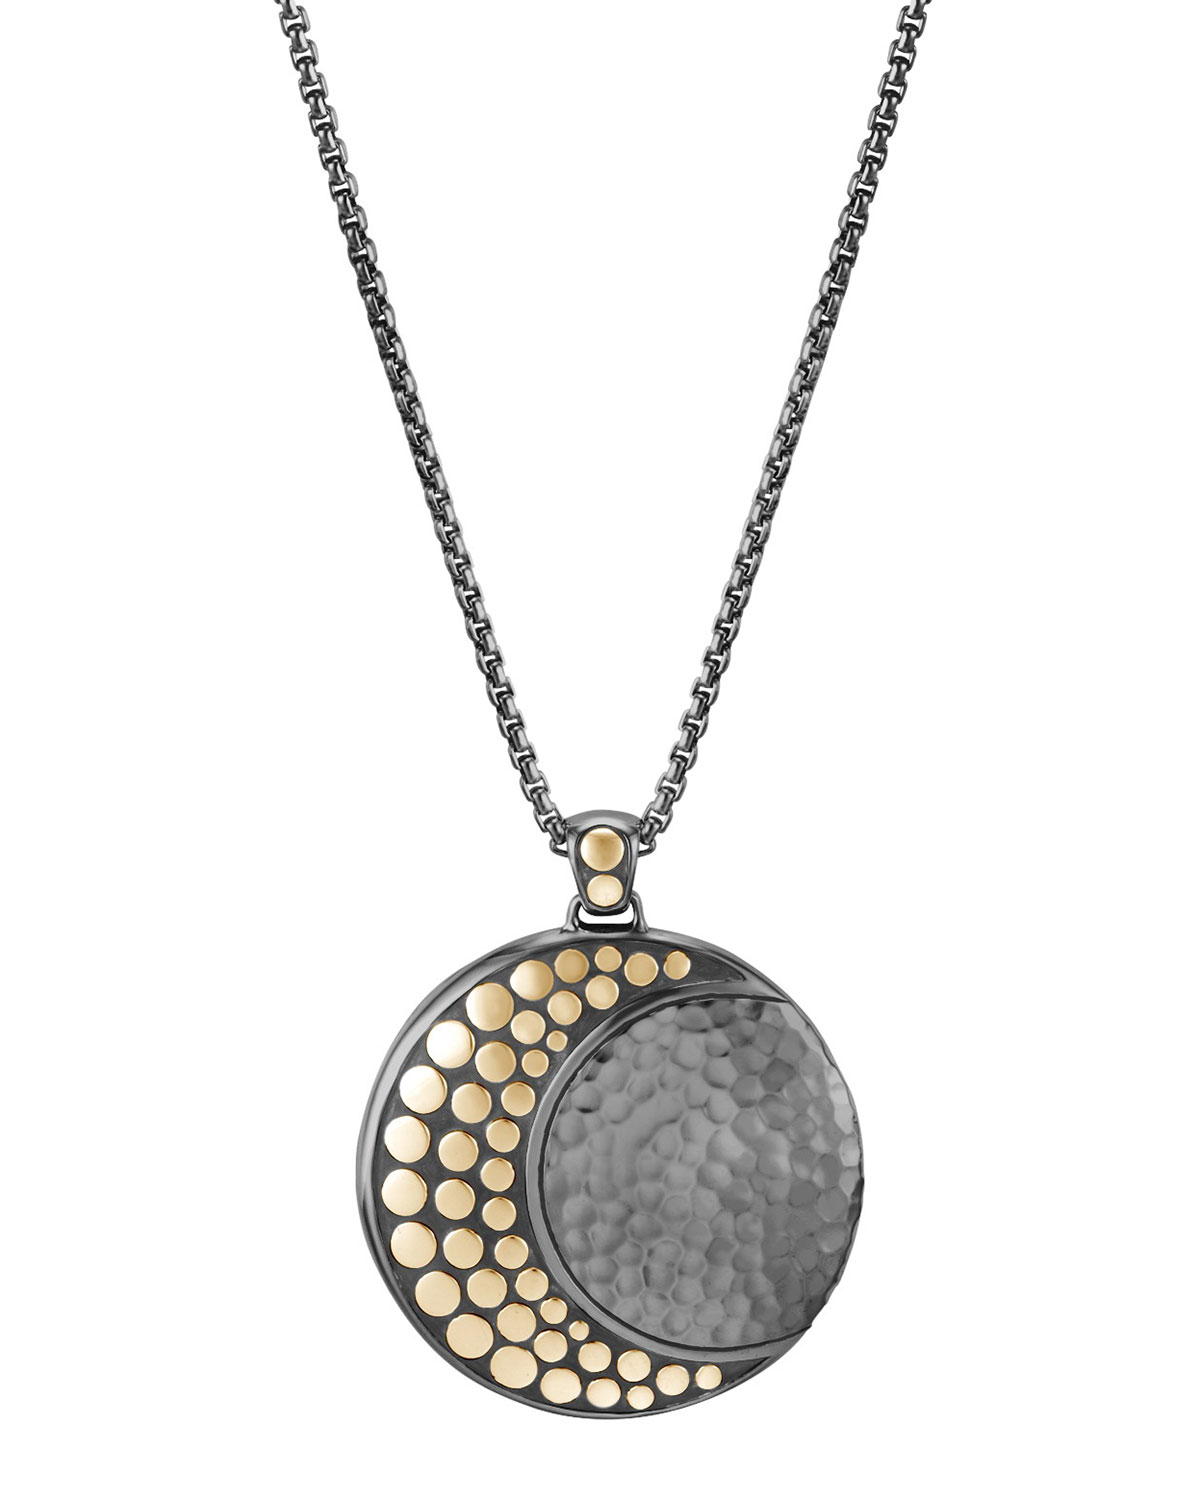 Blackened Sterling Silver & 18K Bonded Gold Dot Hammered Moon Pendant Necklace, 36 in Yellow/Silver